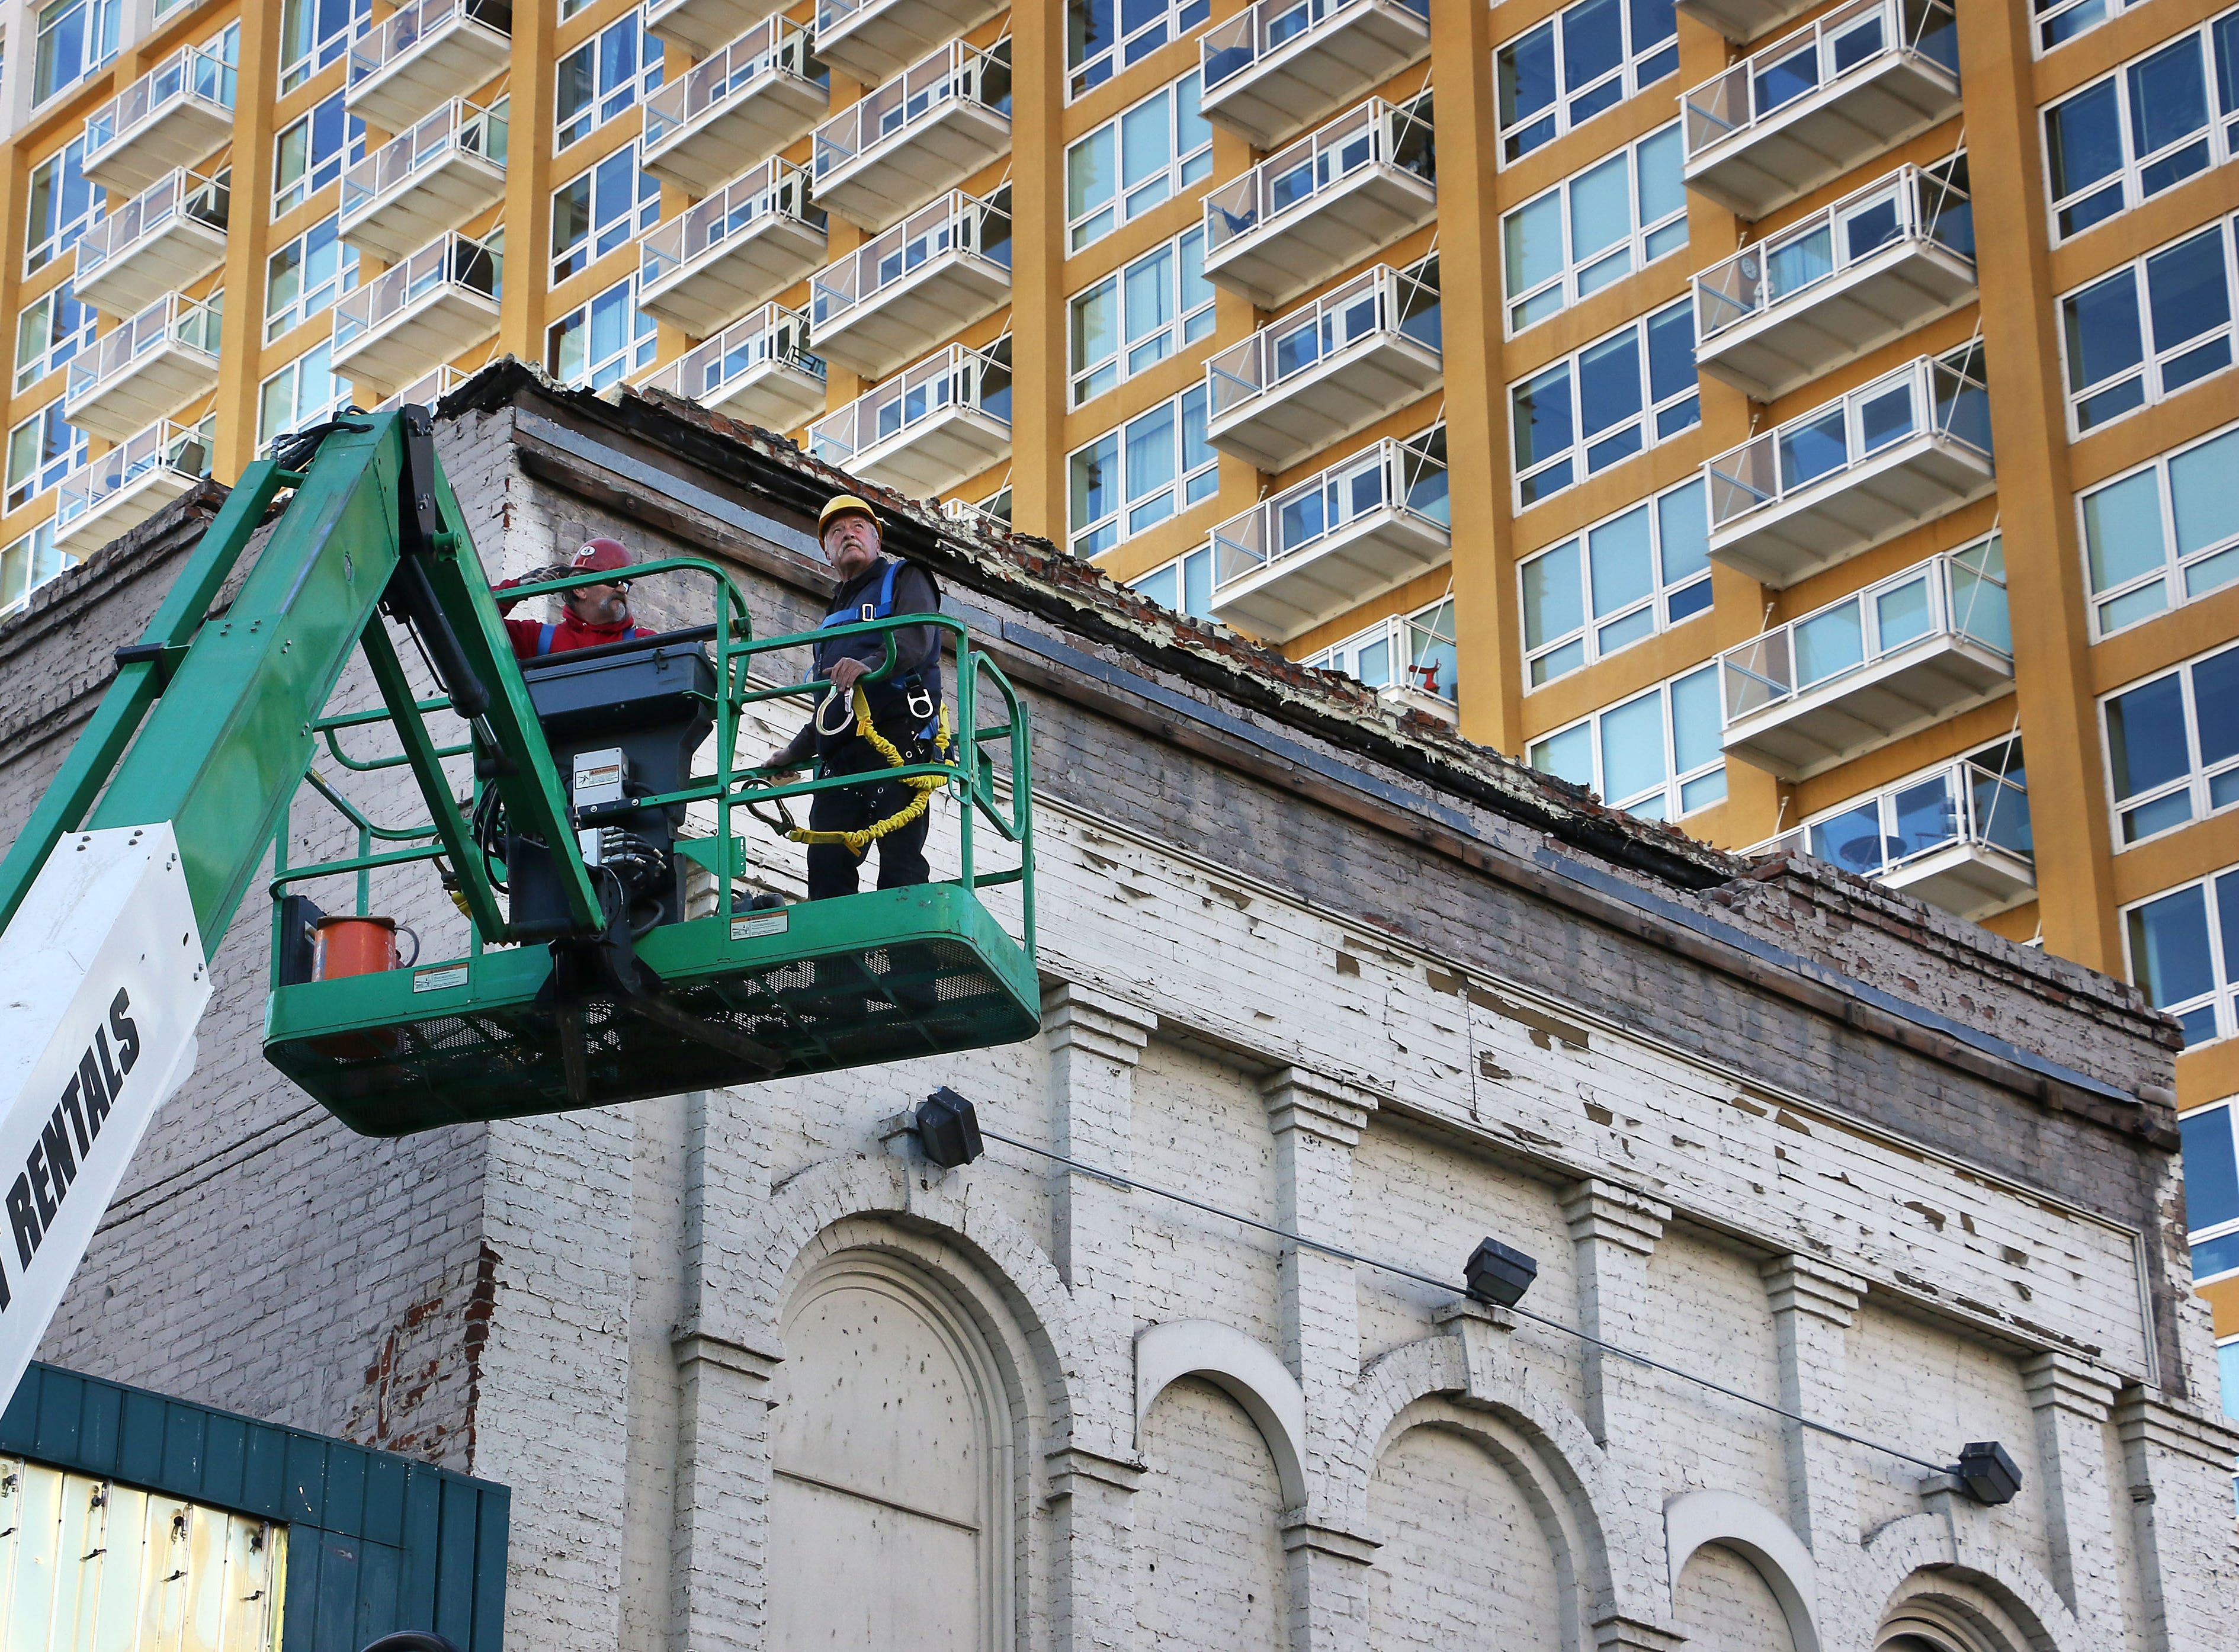 More than 140 years later, the end of the road begins for Reno's oldest building